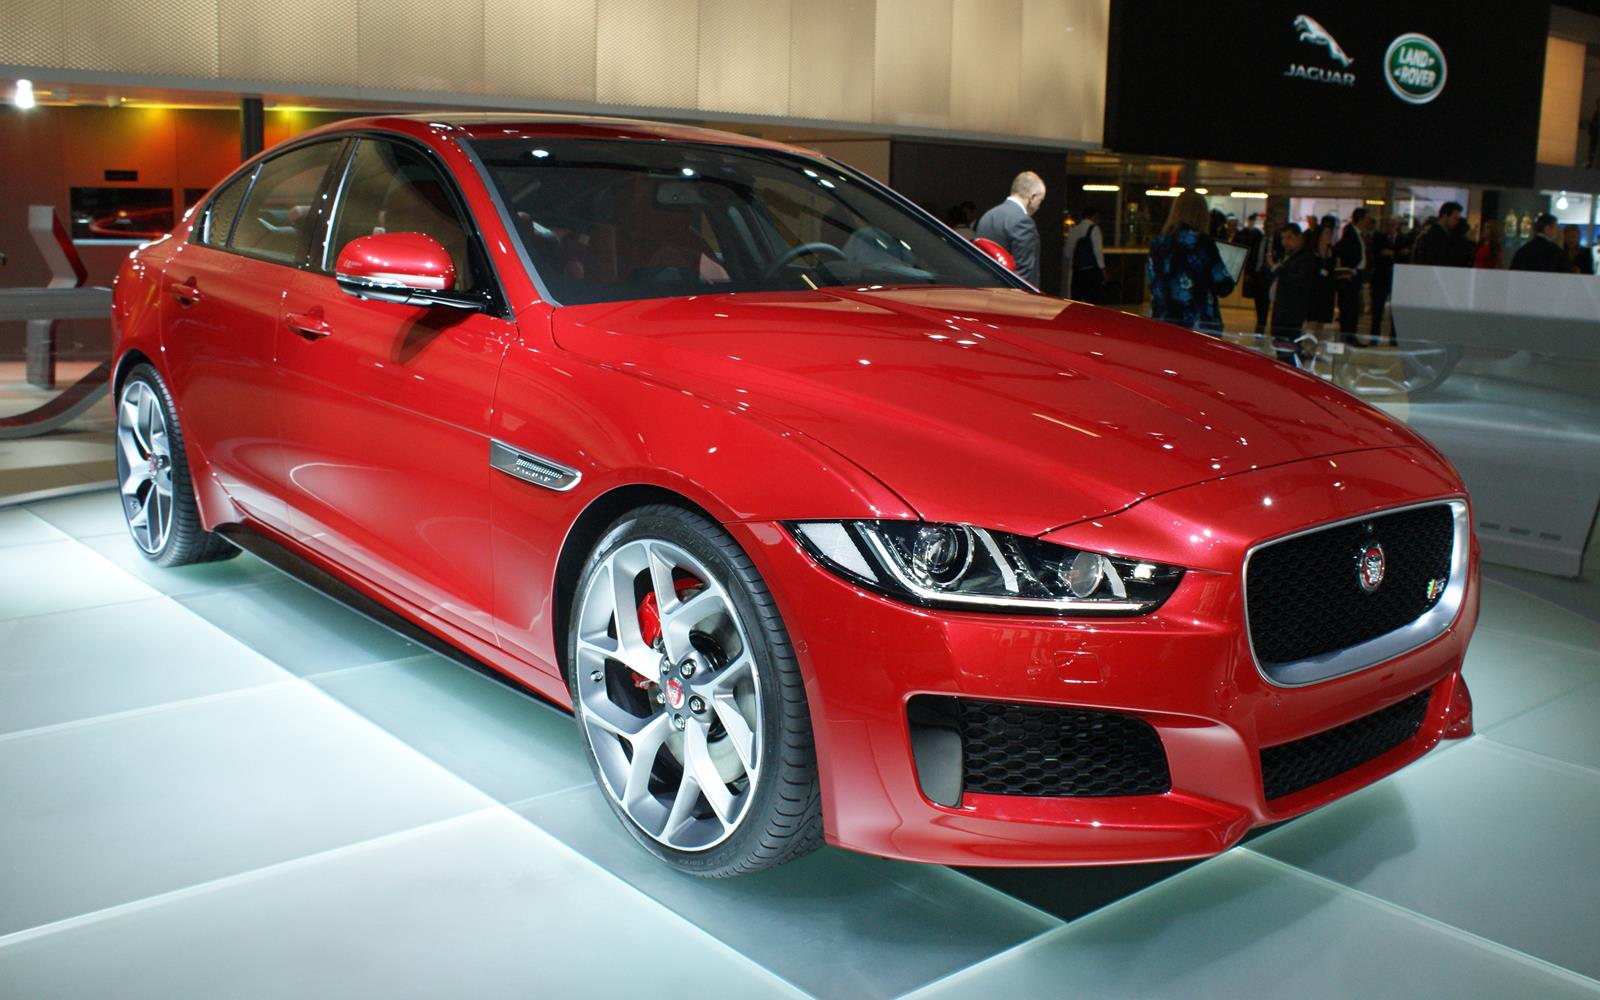 Paris Motor Show 2014 Jaguar XE FrontSeatDriver.co.uk